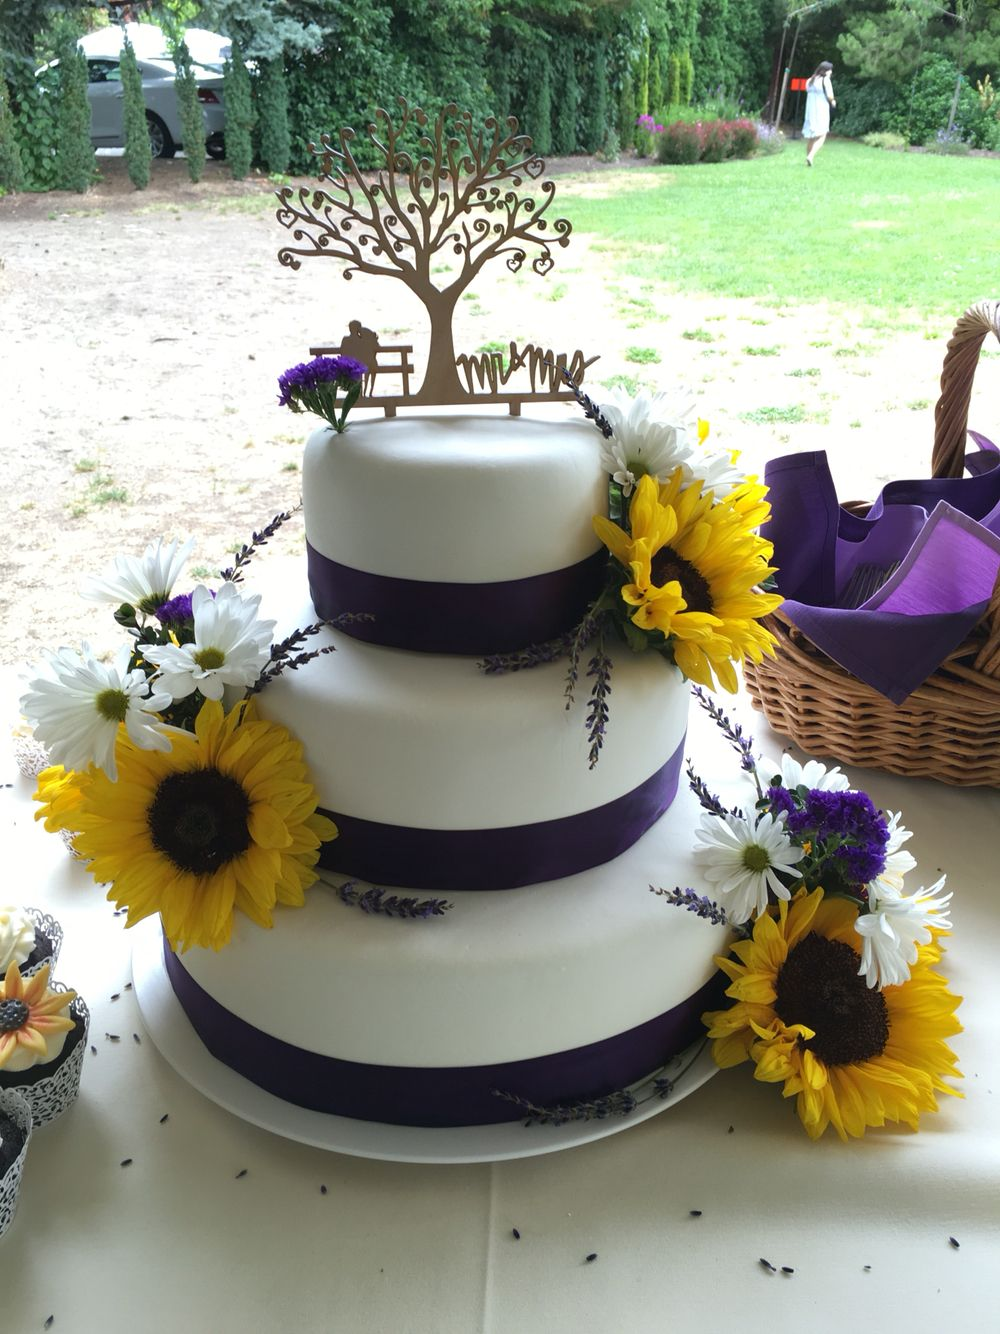 sunflower wedding invitations printable%0A Sunflower wedding cake  lavender and honey middle tier  chocolate and  lavender bottom and top